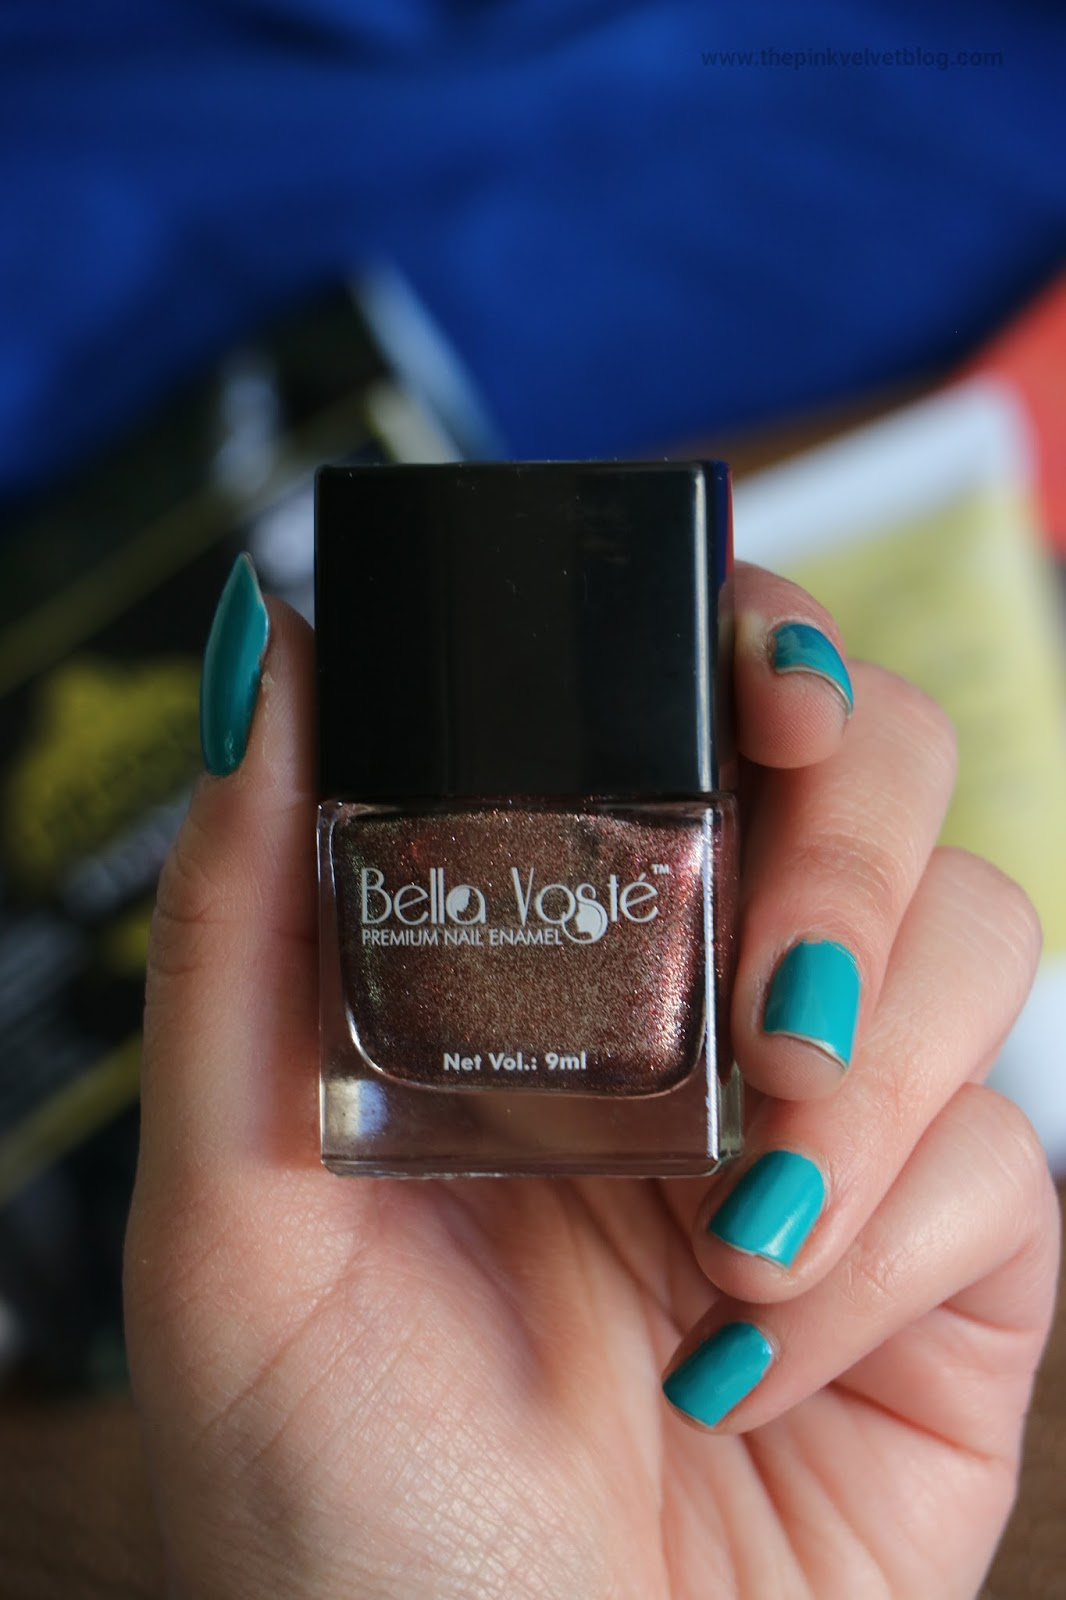 Bella Voste Premium Nail Enamel - Let's Just Dance